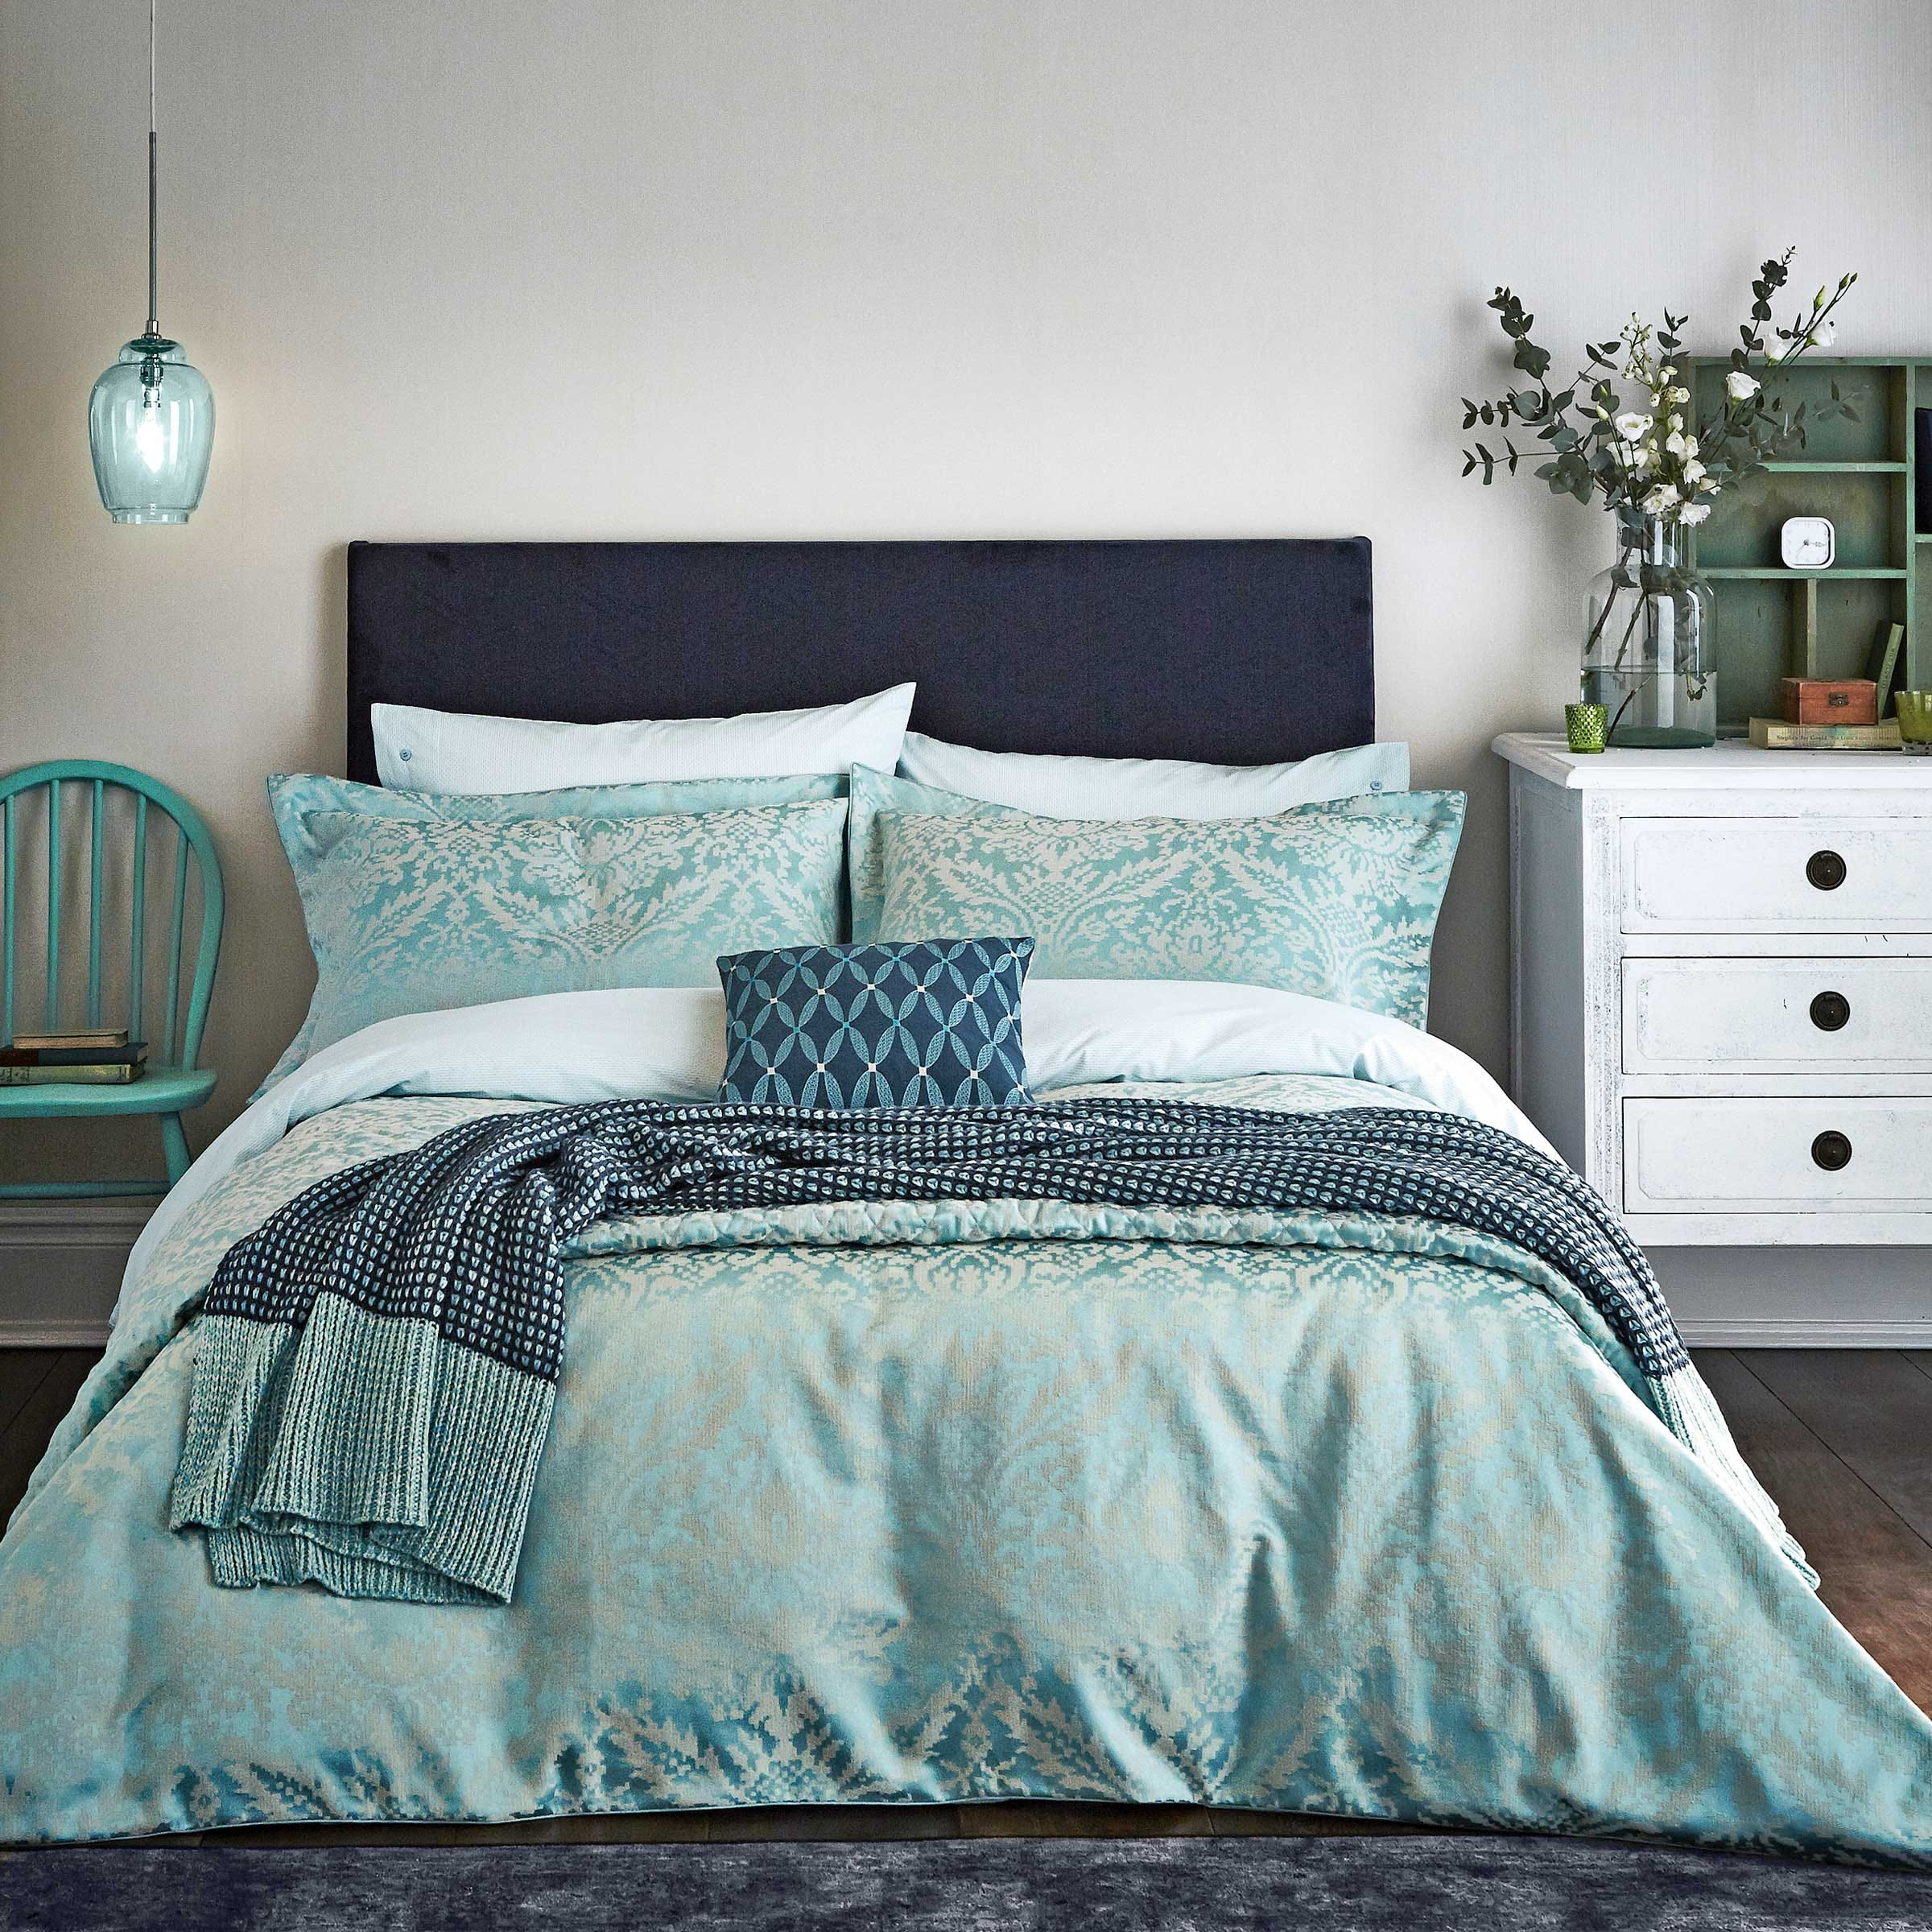 Bedeck 1951 Bedding - Loya Duvet Cover Single, Mint